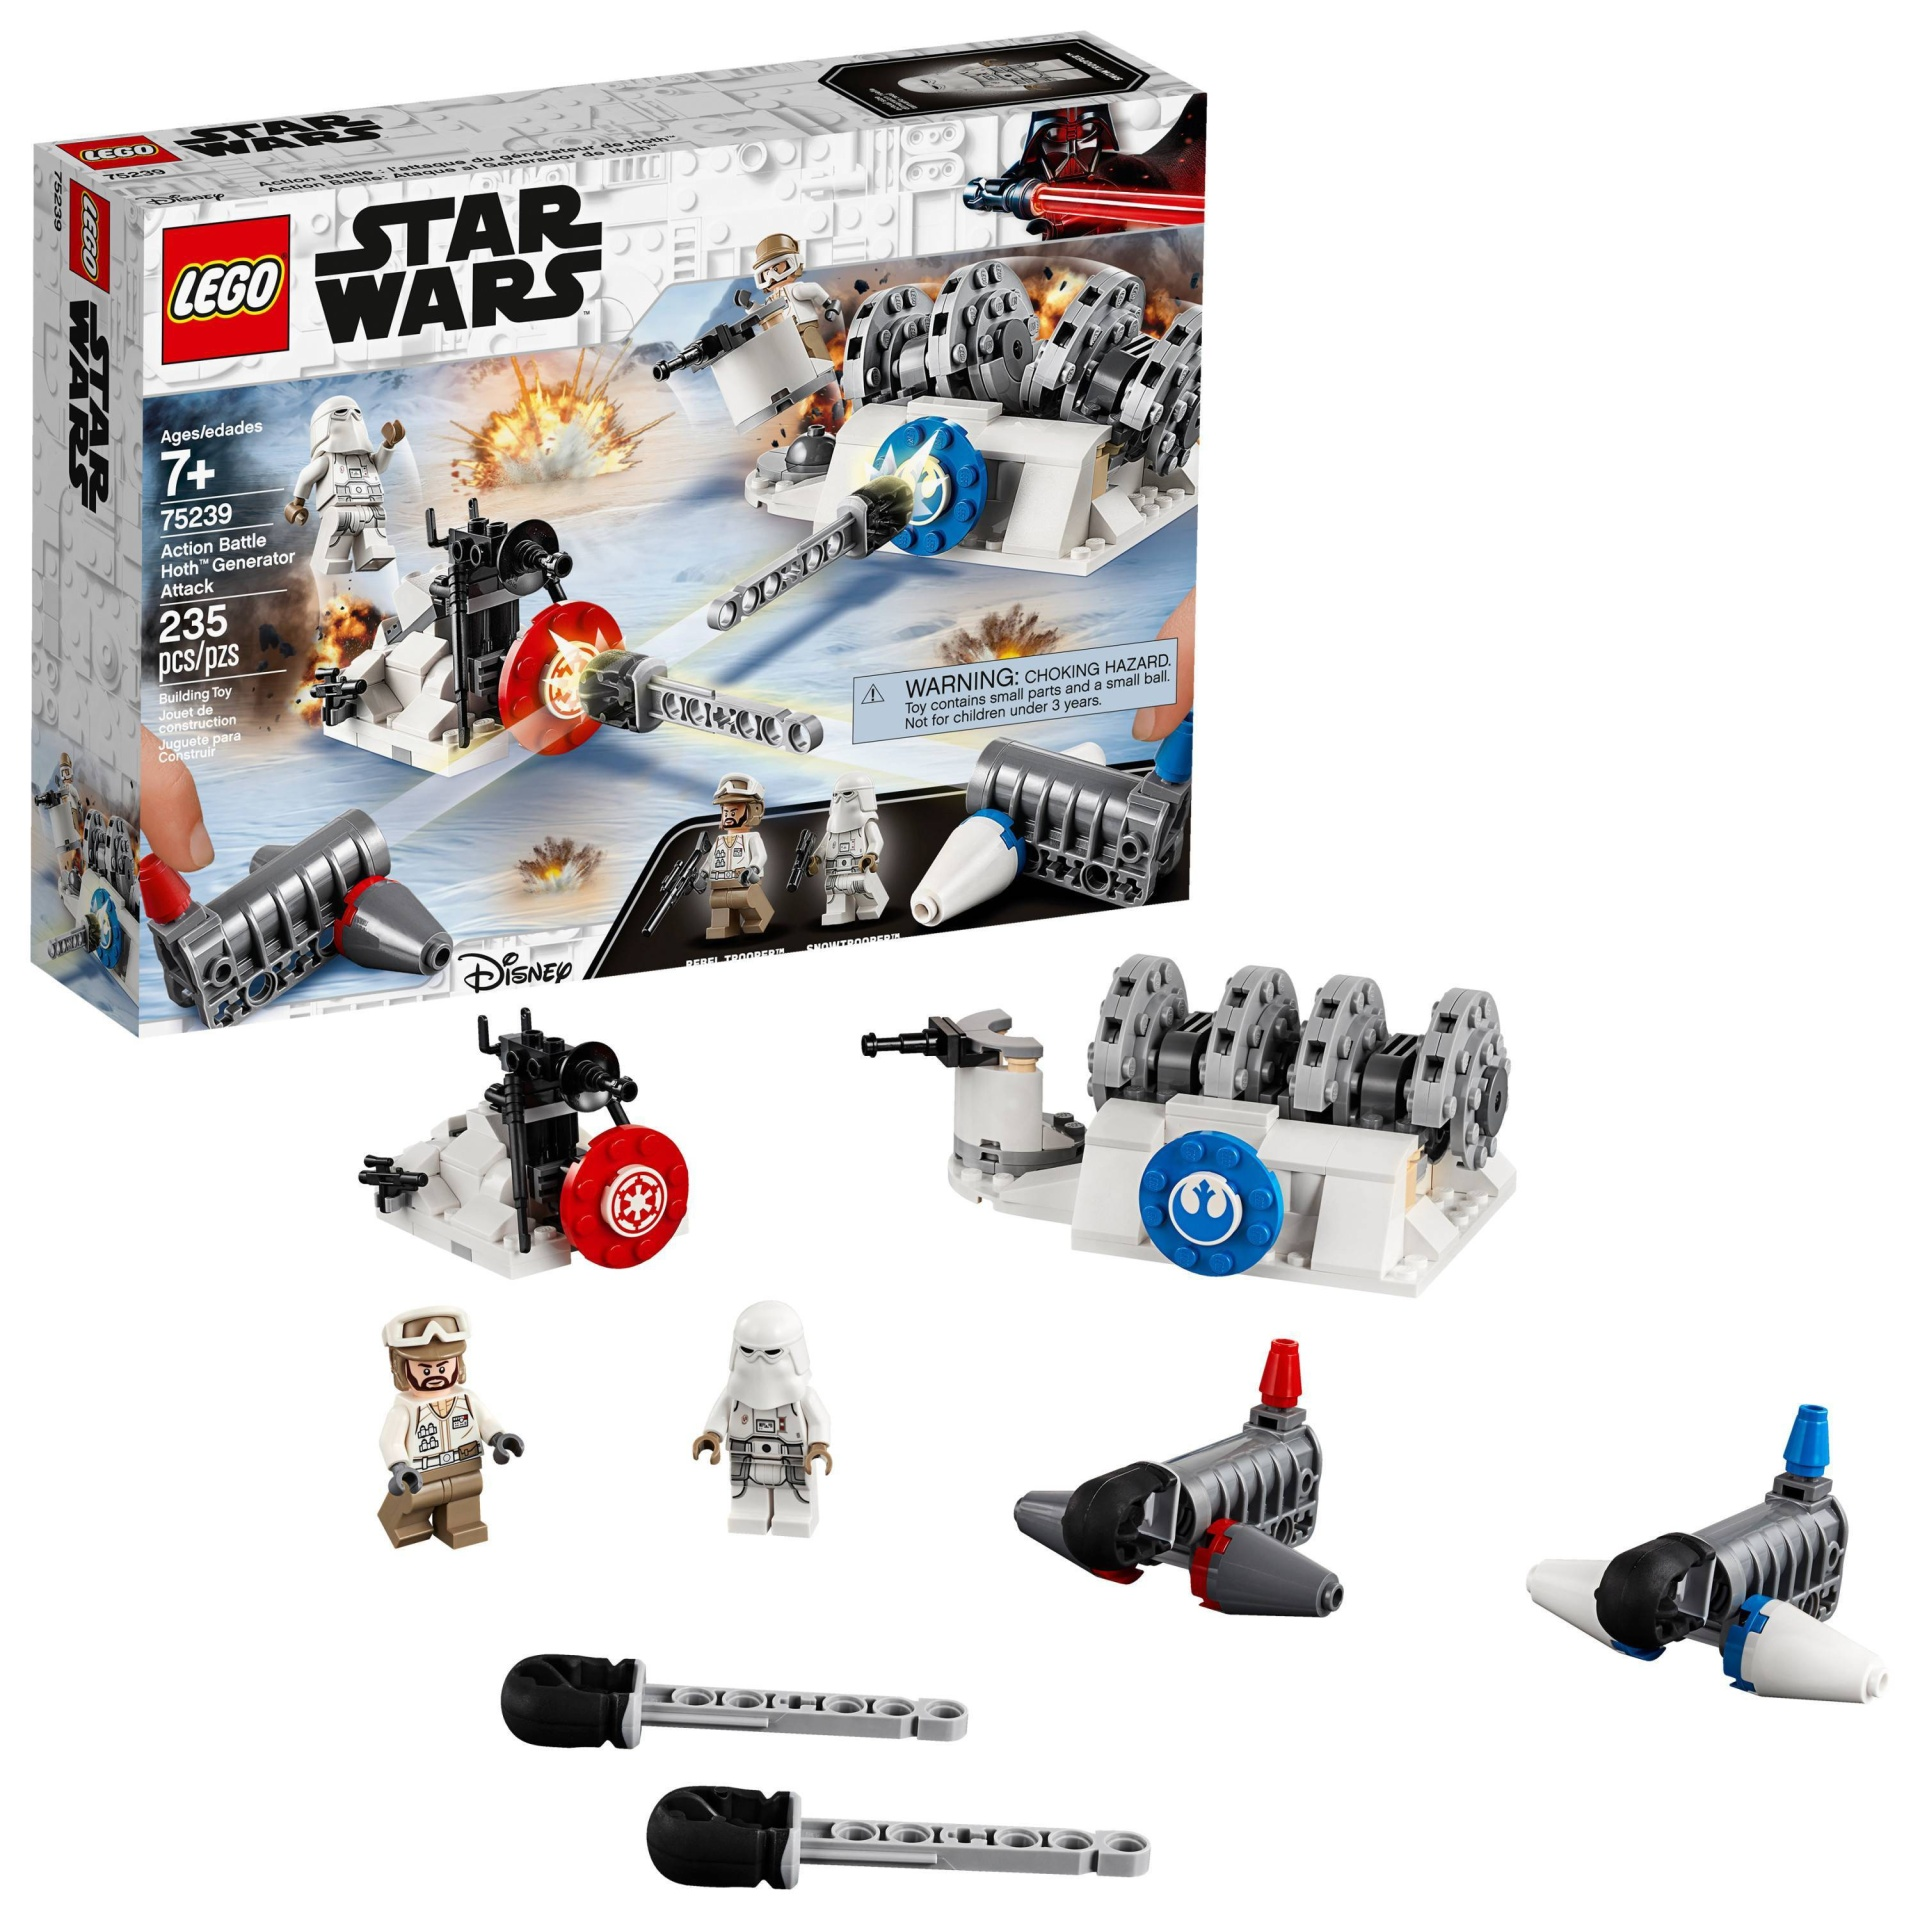 slide 1 of 7, LEGO Star Wars Action Battle Hoth Generator Attack 75239,